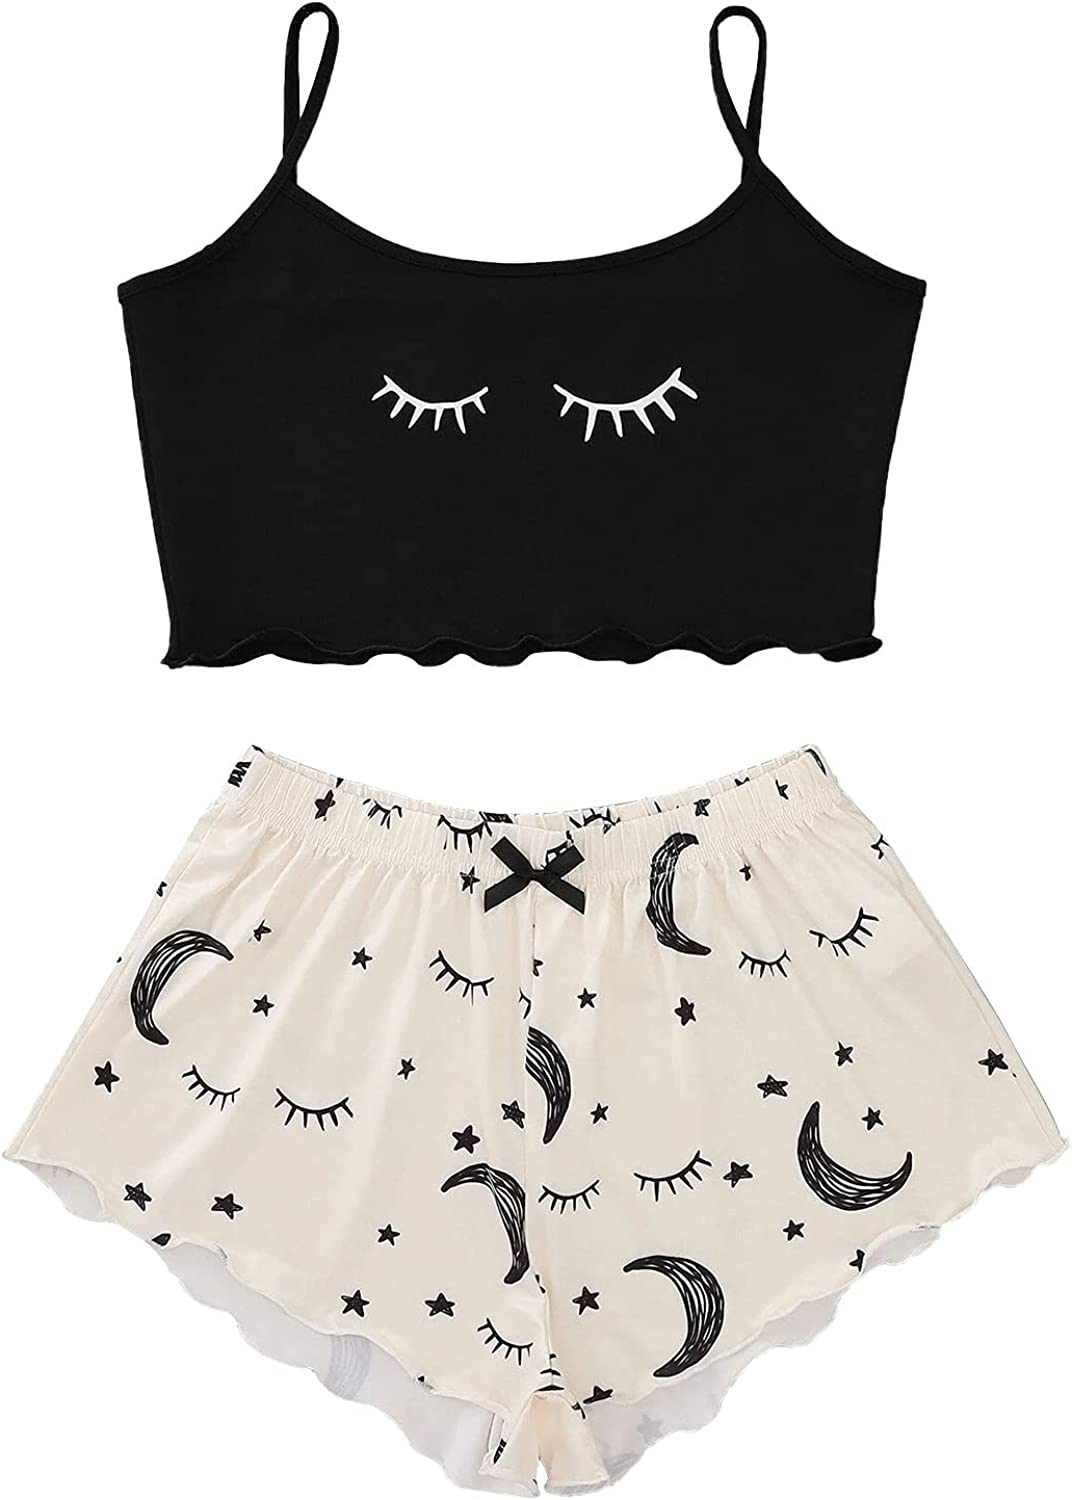 Sleepwear for Women, Sexy Sleeveless Sling Crop Tops Shorts Pajamas Set Cute Moon Printed Two Piece Outfits Tracksuit